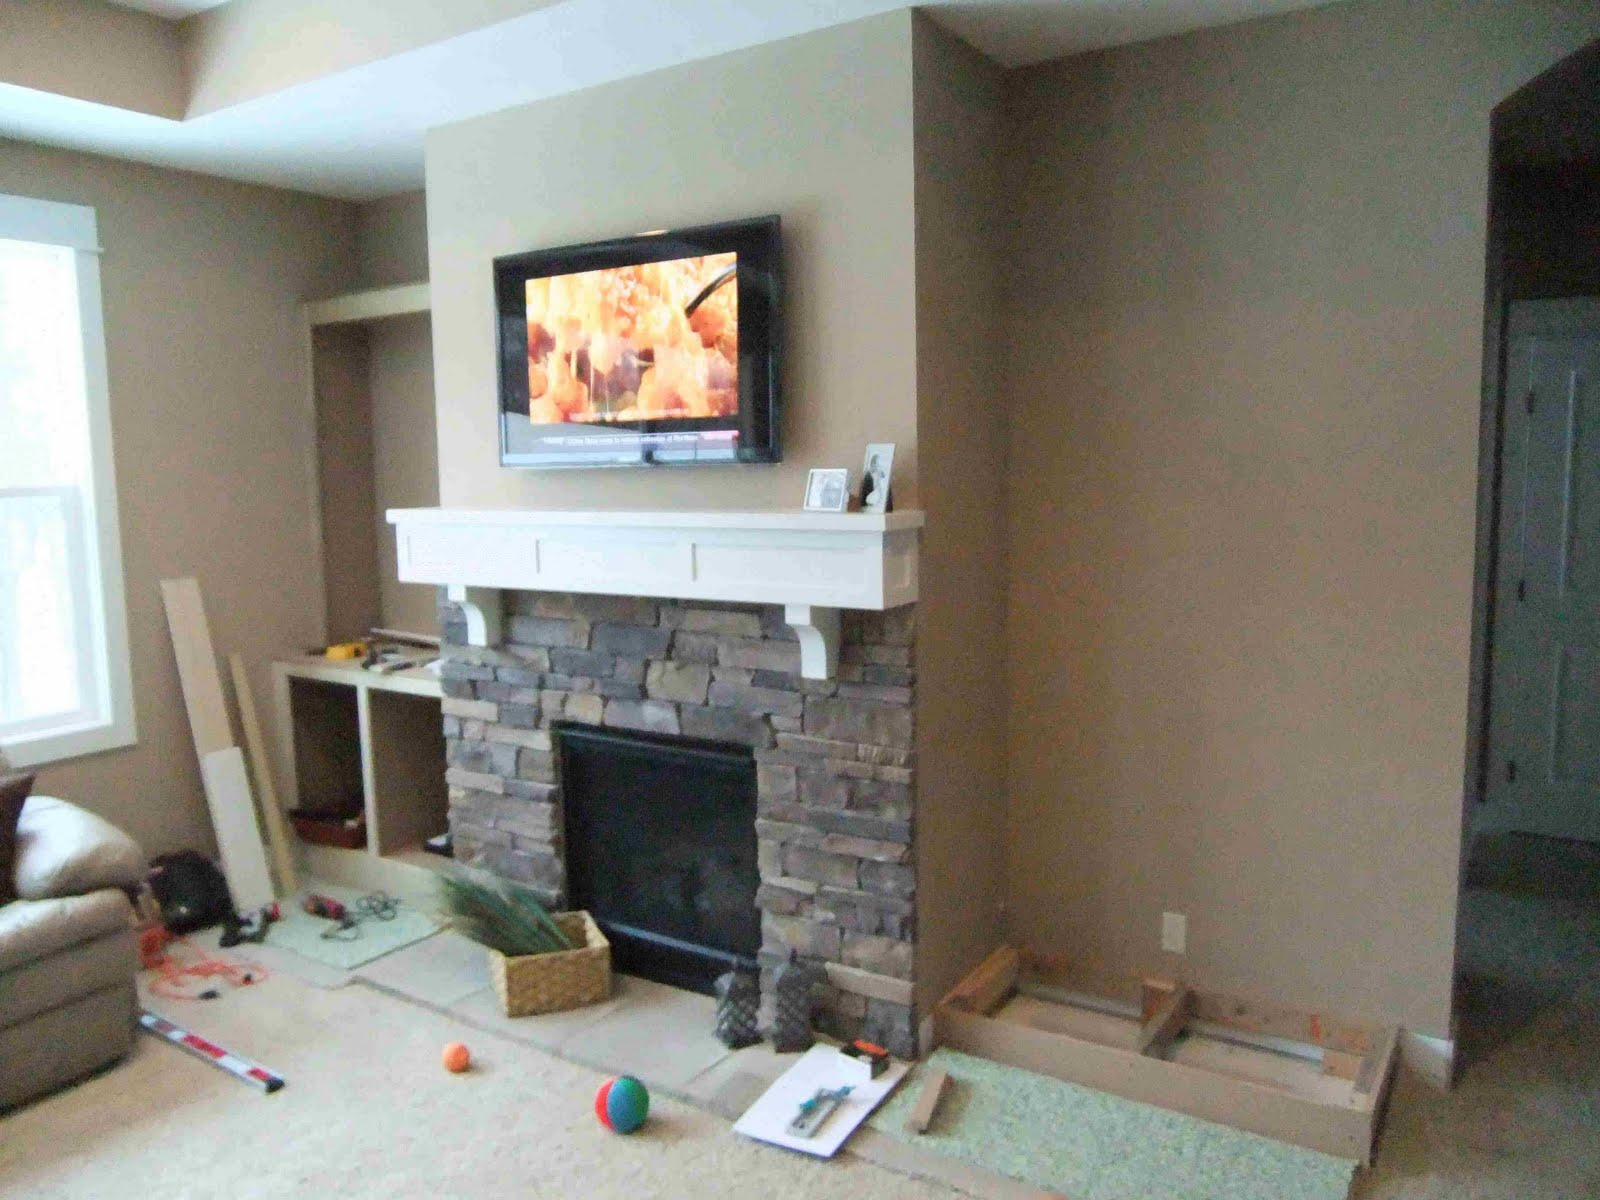 stone living custom ideas with fireplace bookshelves room of sourcetranslina fireplaces shelves shelving from com